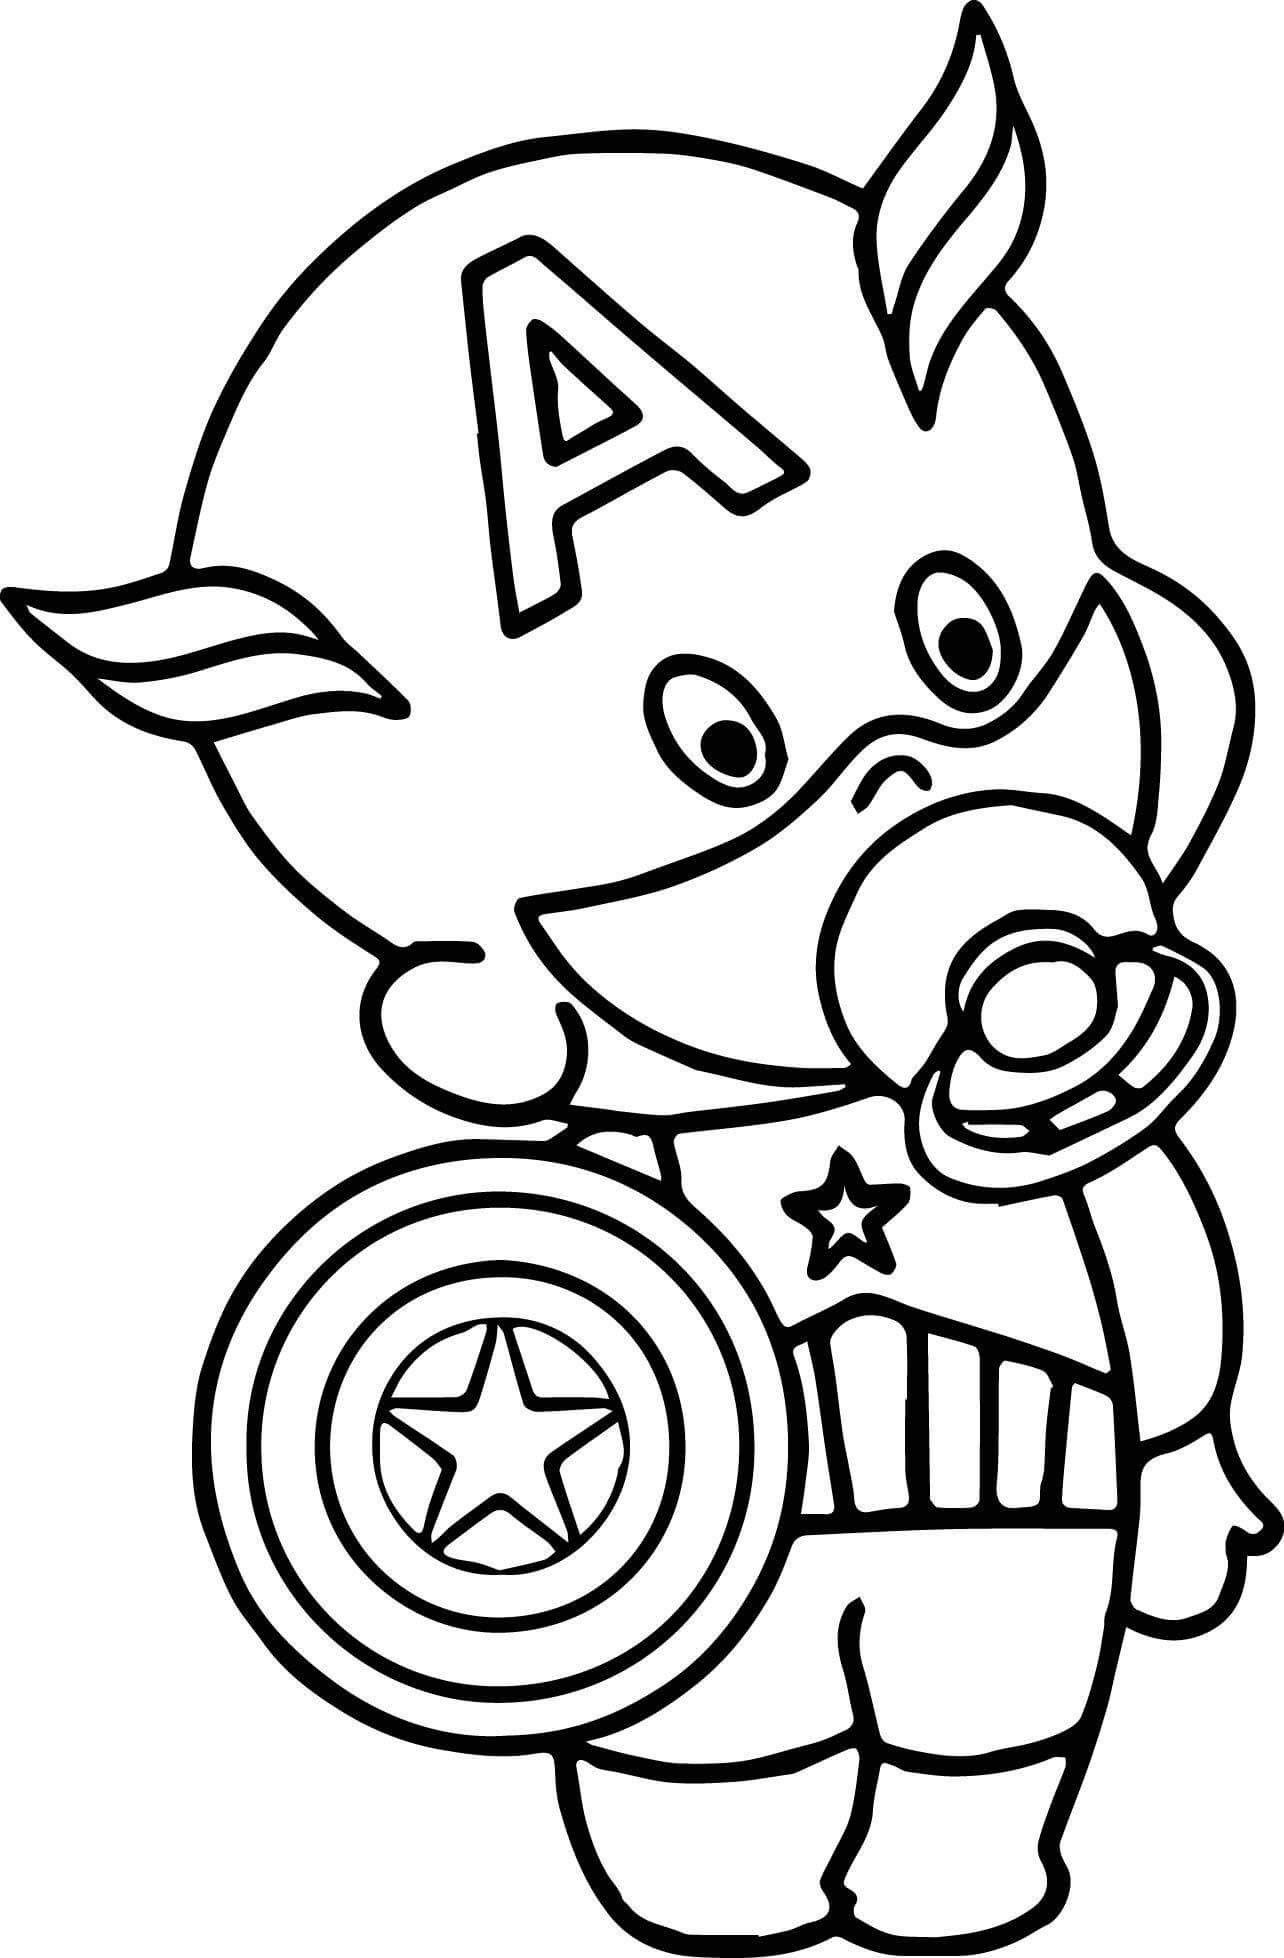 Free Superhero Coloring Pages Coloring Pages Baby Superhero Coloring Pages Invigorate Superhero Coloring Avengers Coloring Pages Captain America Coloring Pages